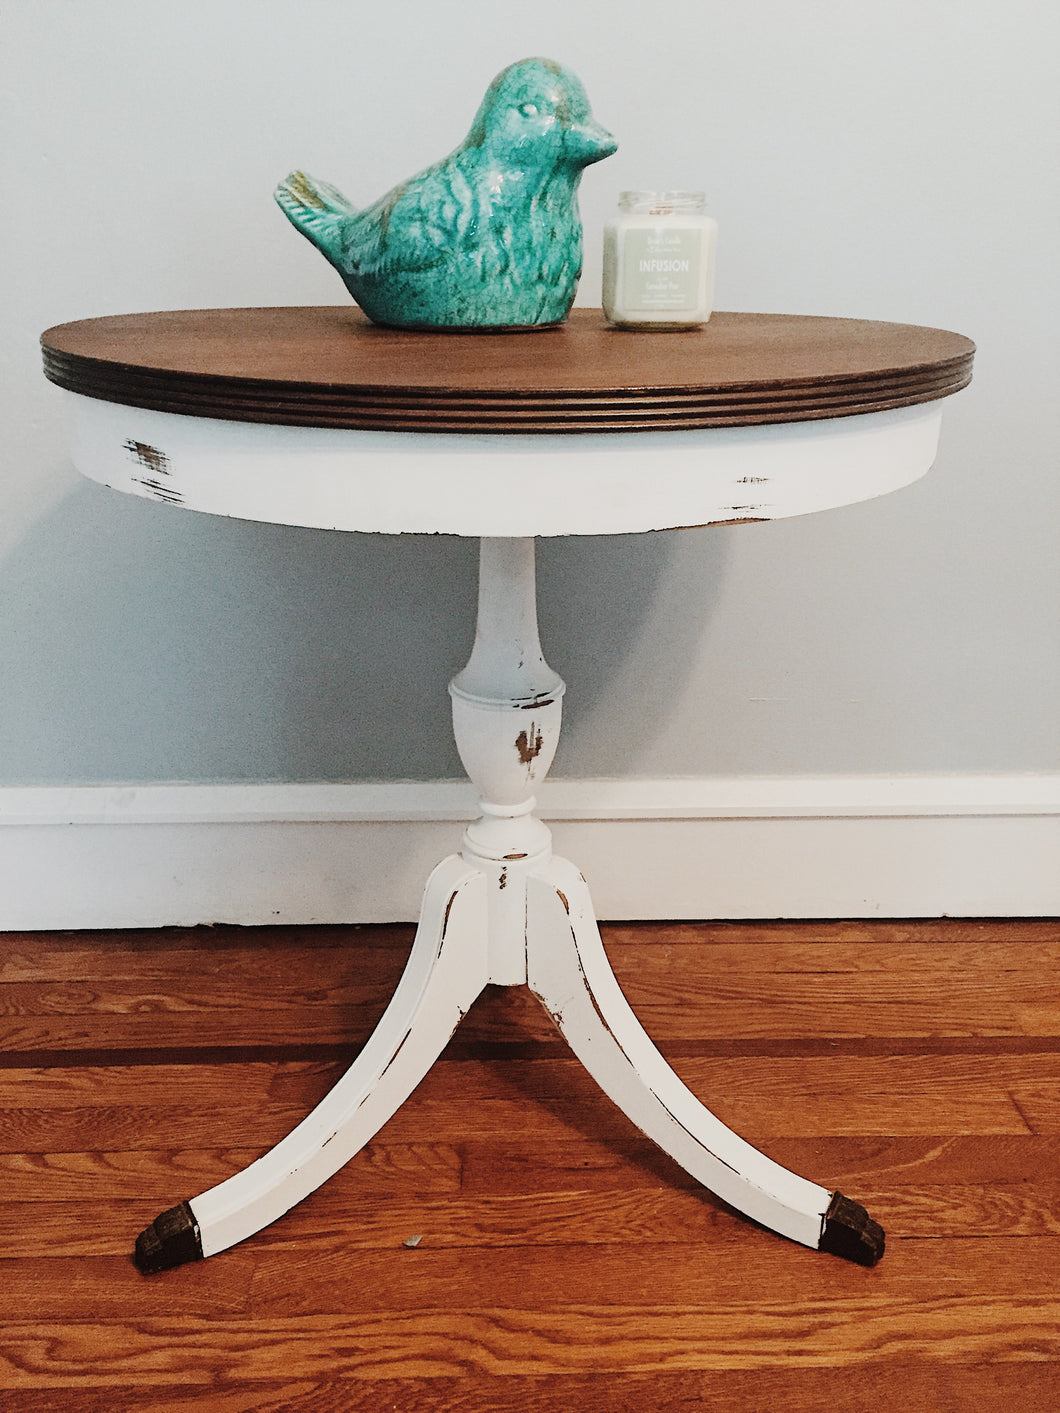 Ravishing Round Table- Local Pick Up Only -SOLD